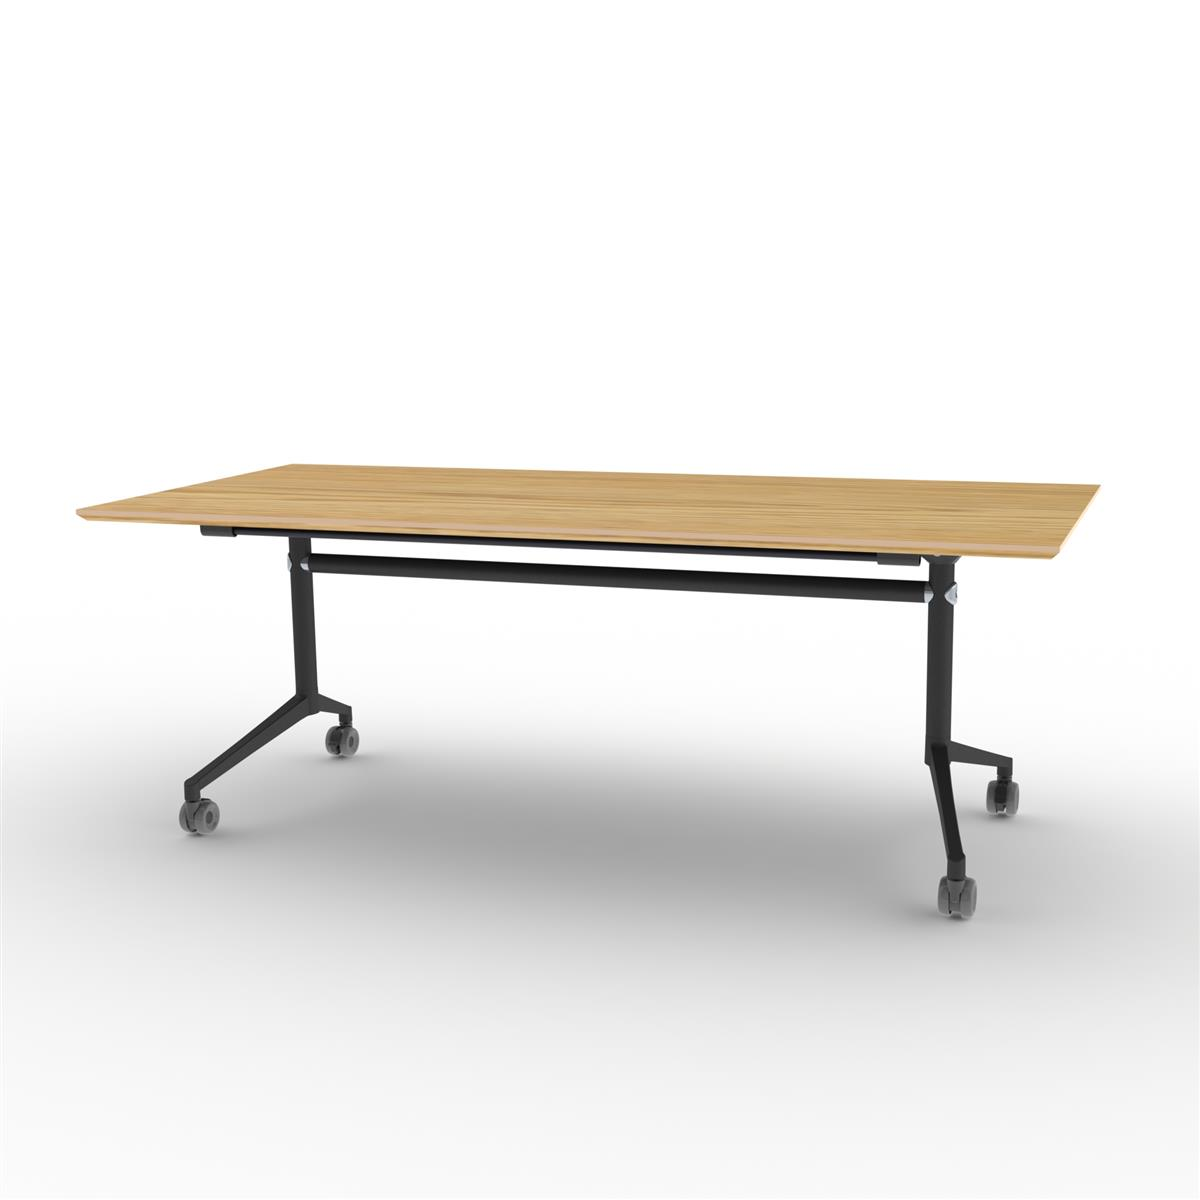 X1 Seamless Folding Table 200x90 cm med eikefinér og sort understell